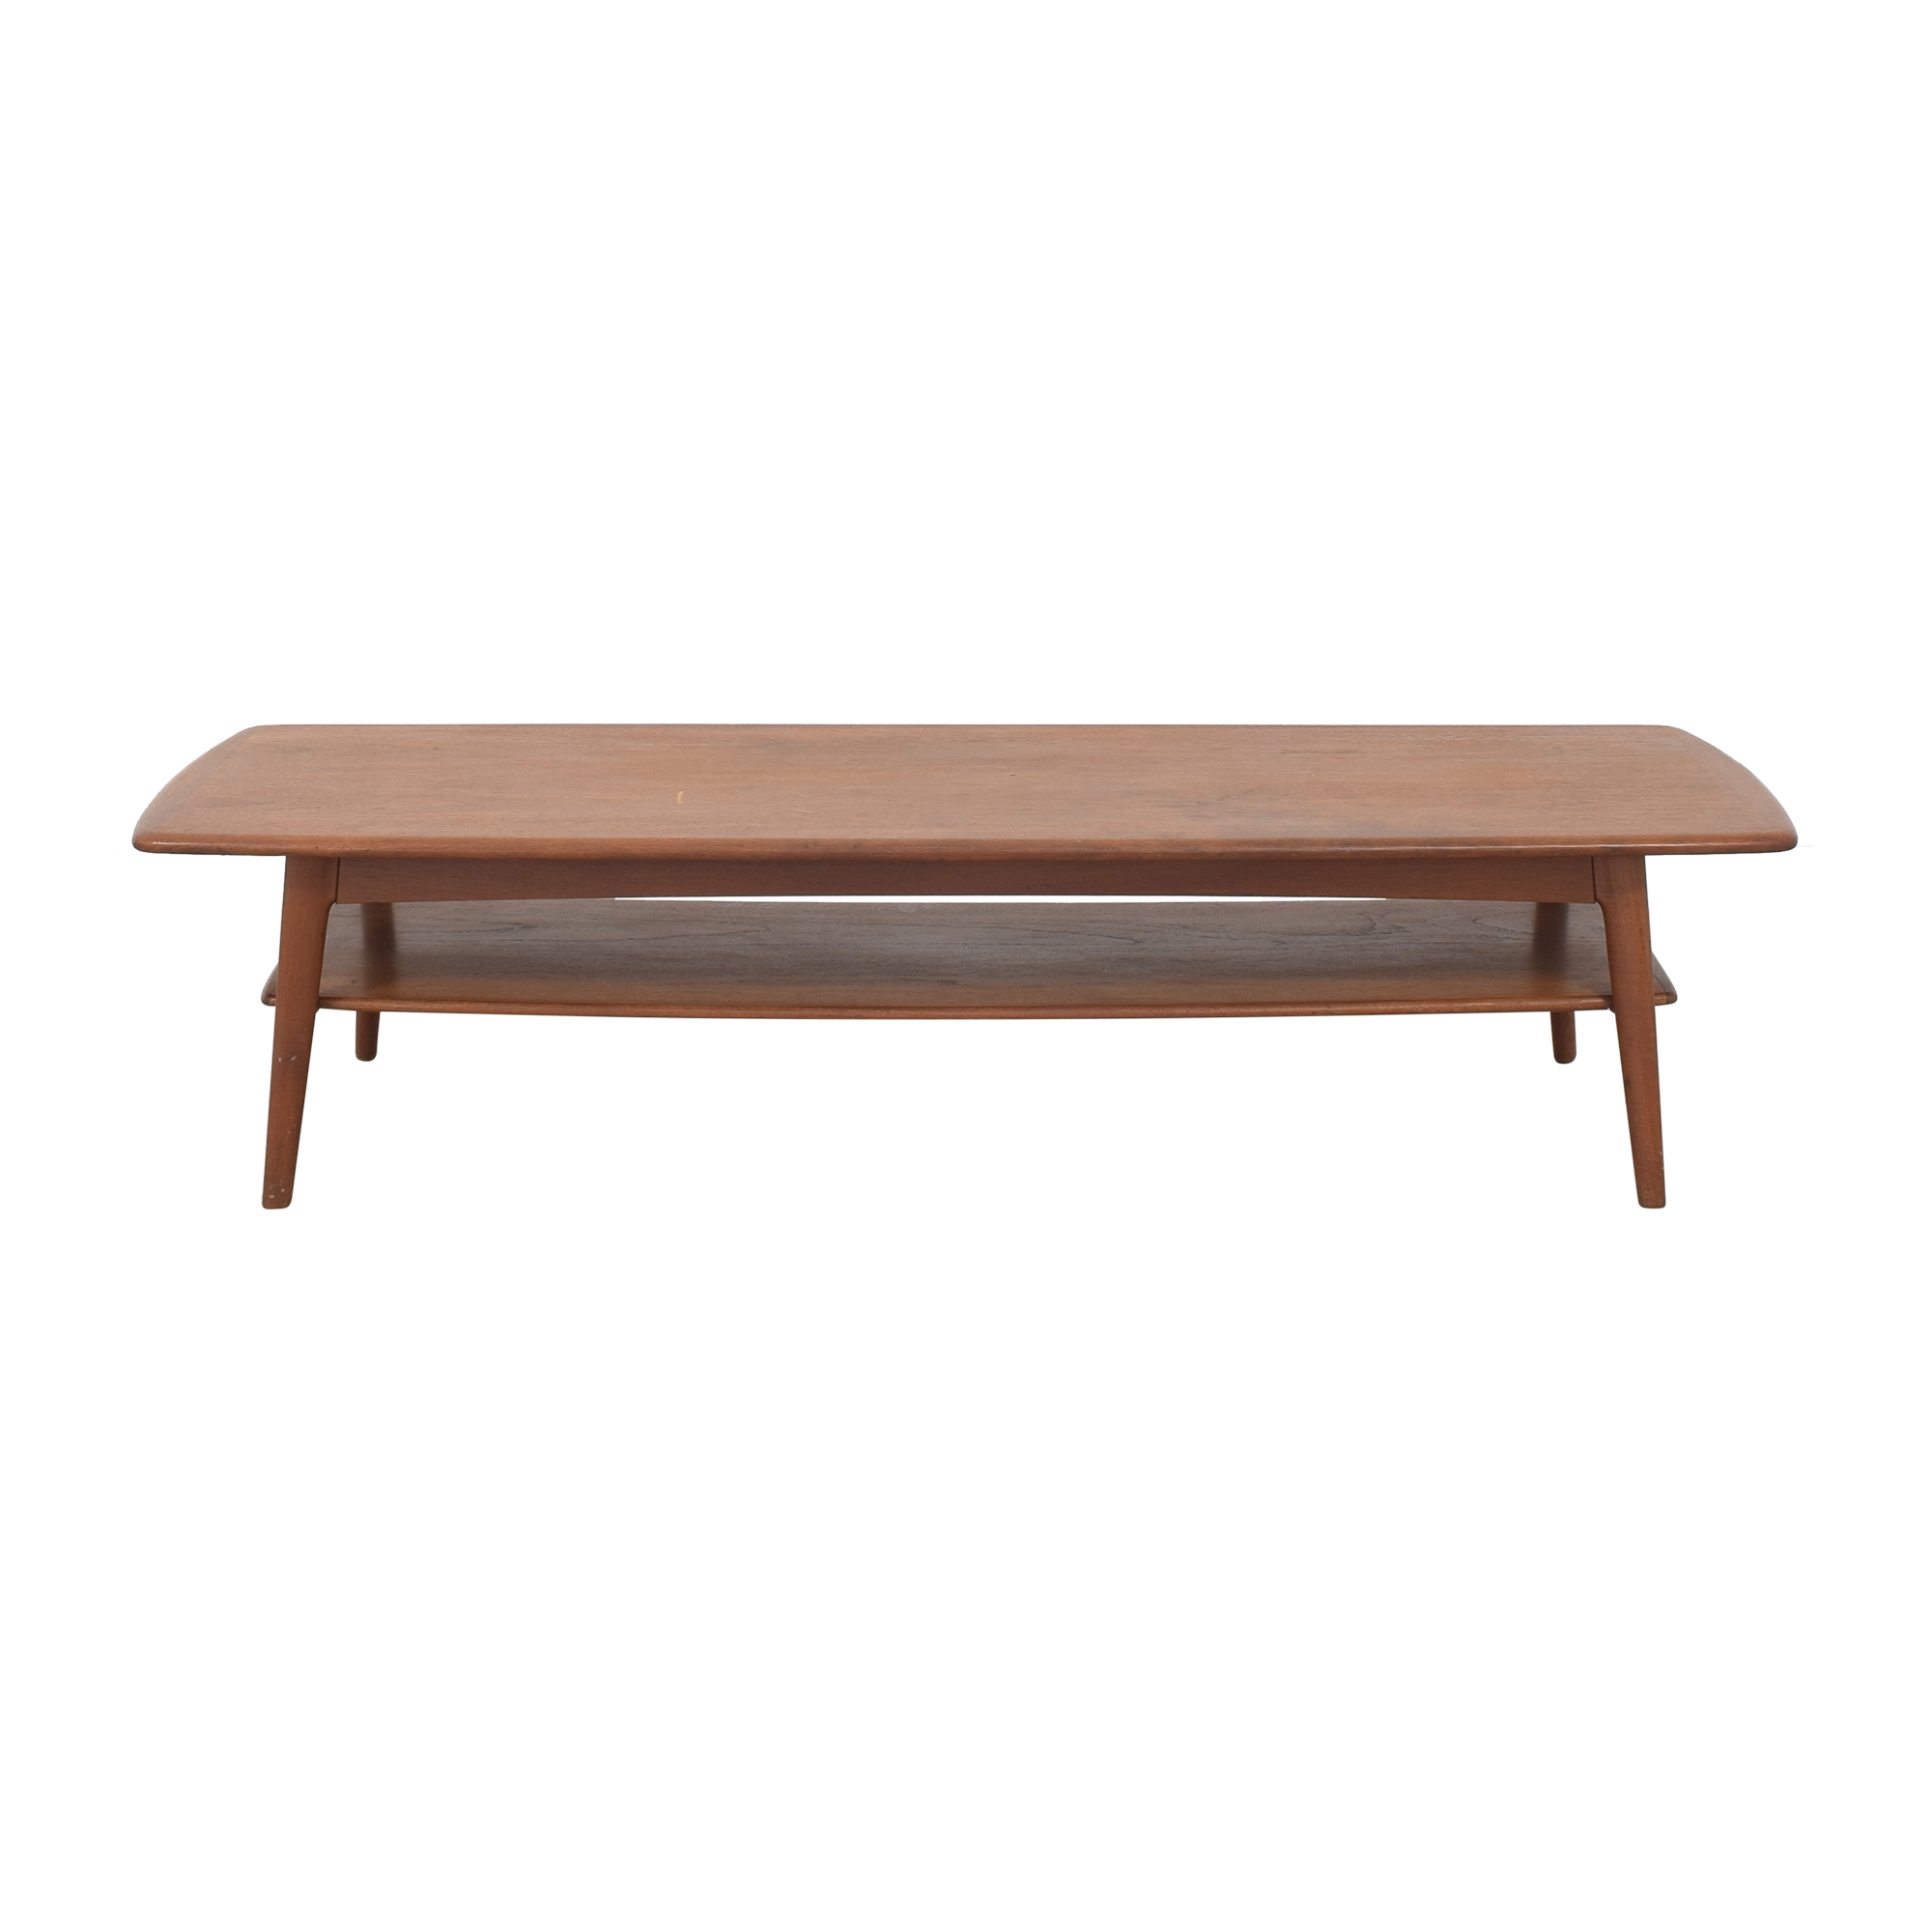 ABC Carpet & Home ABC Carpet & Home Mid Century Modern Coffee Table coupon